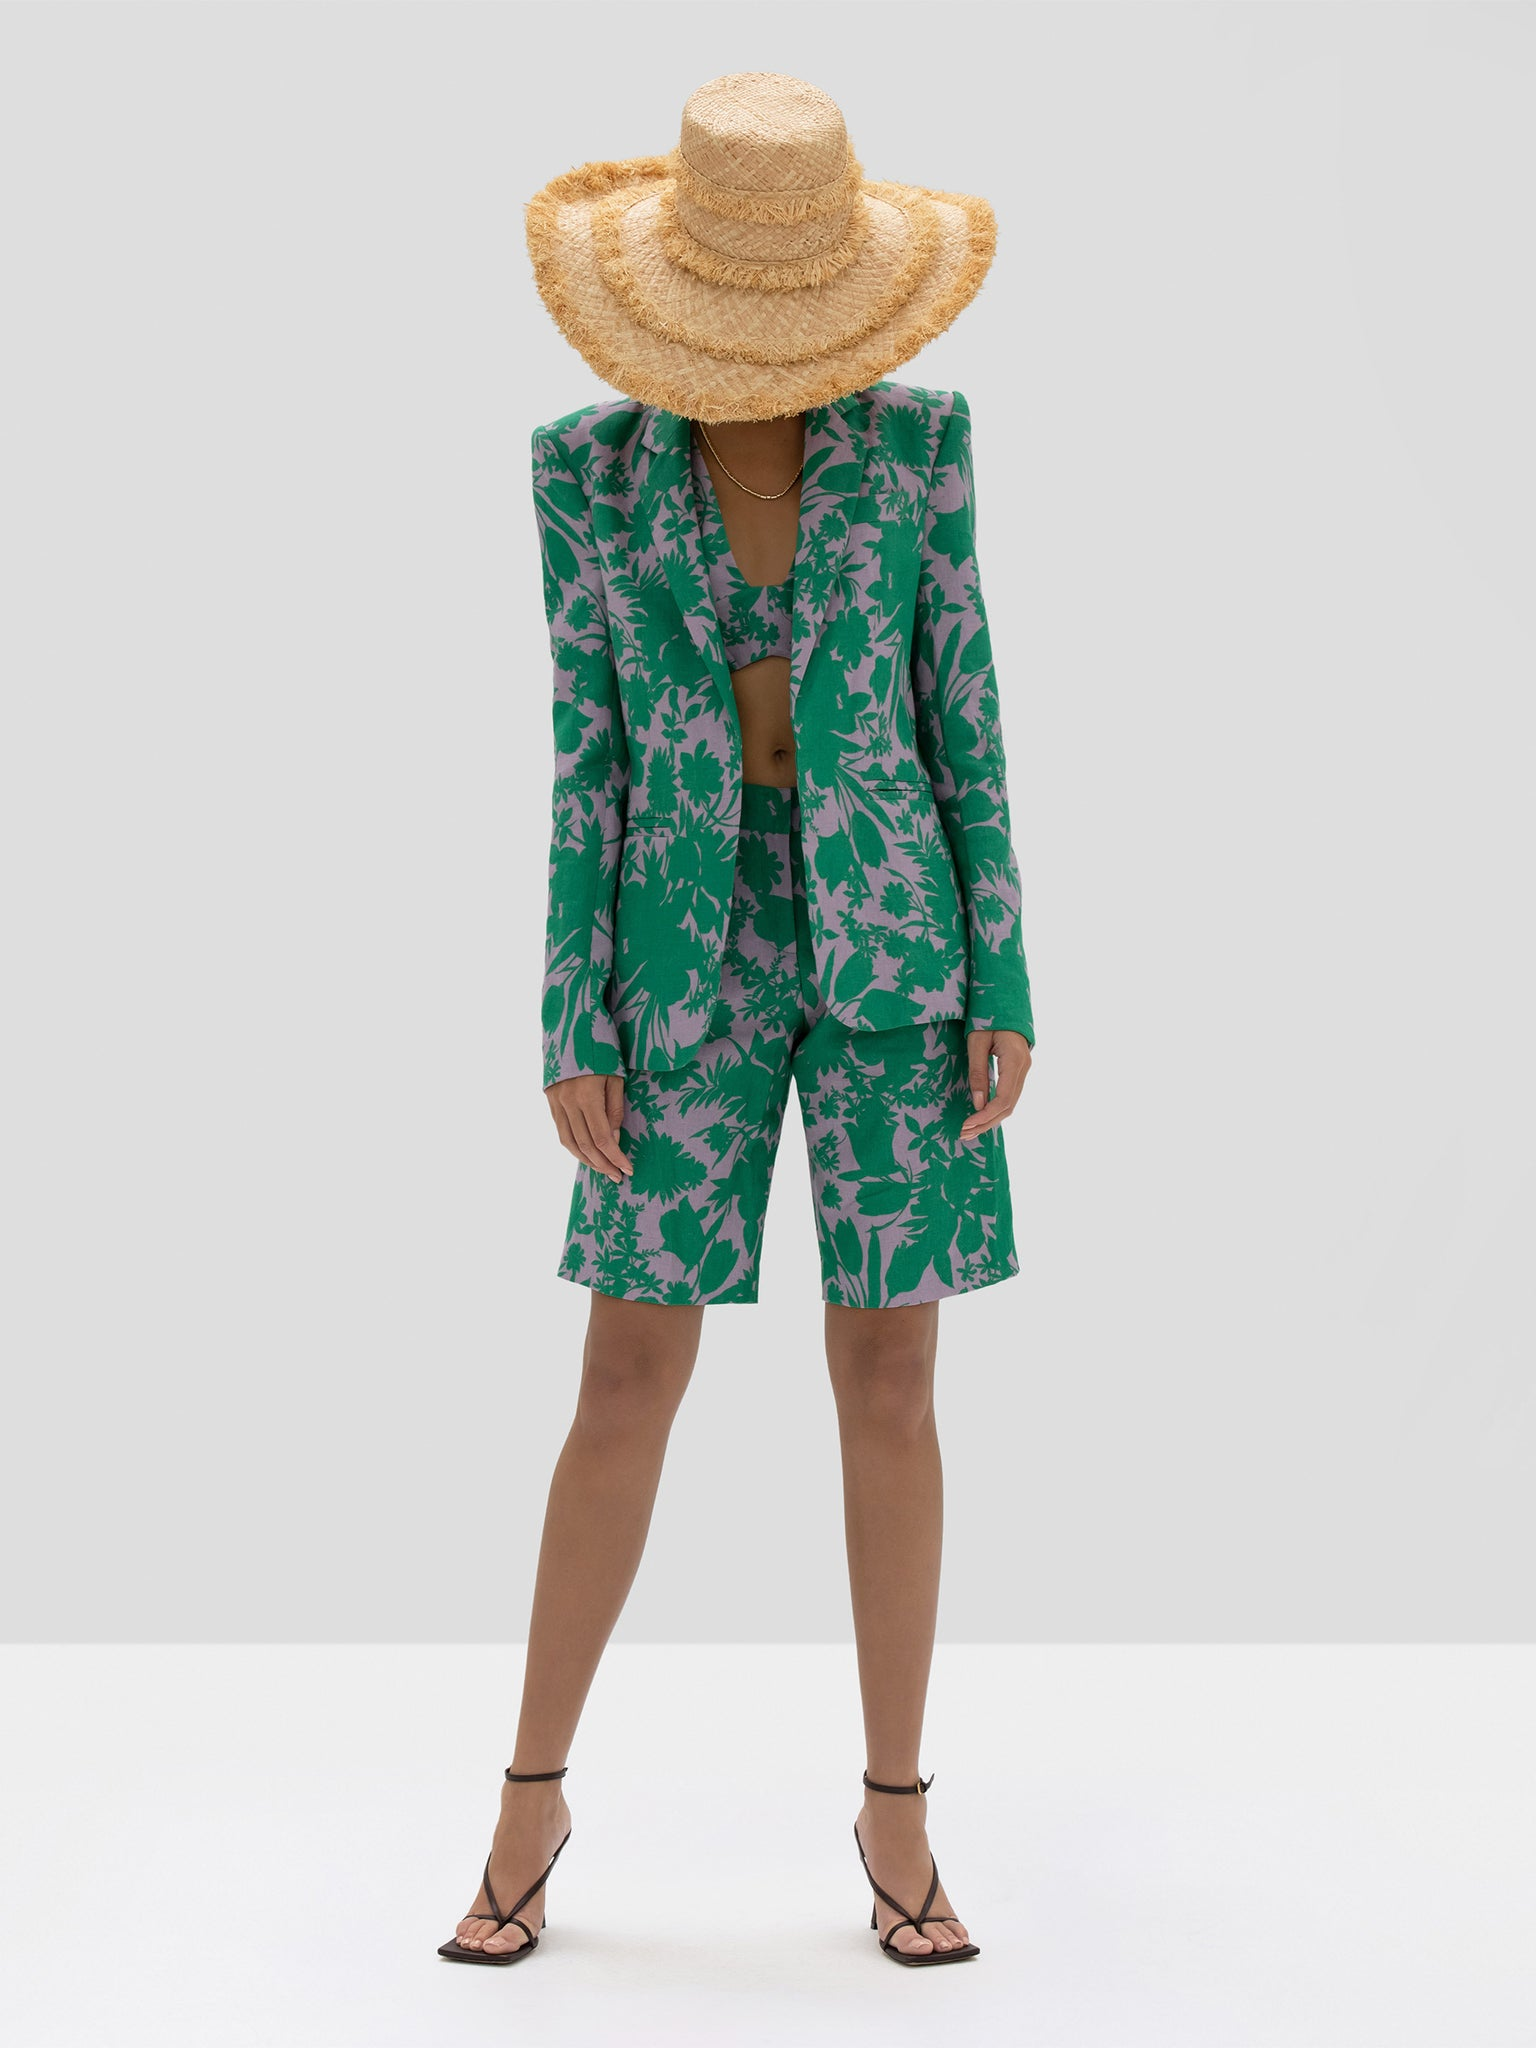 The Talbot Short in Emerald Botanical from the Spring Summer 2020 Ready To Wear Collection. - Rear View